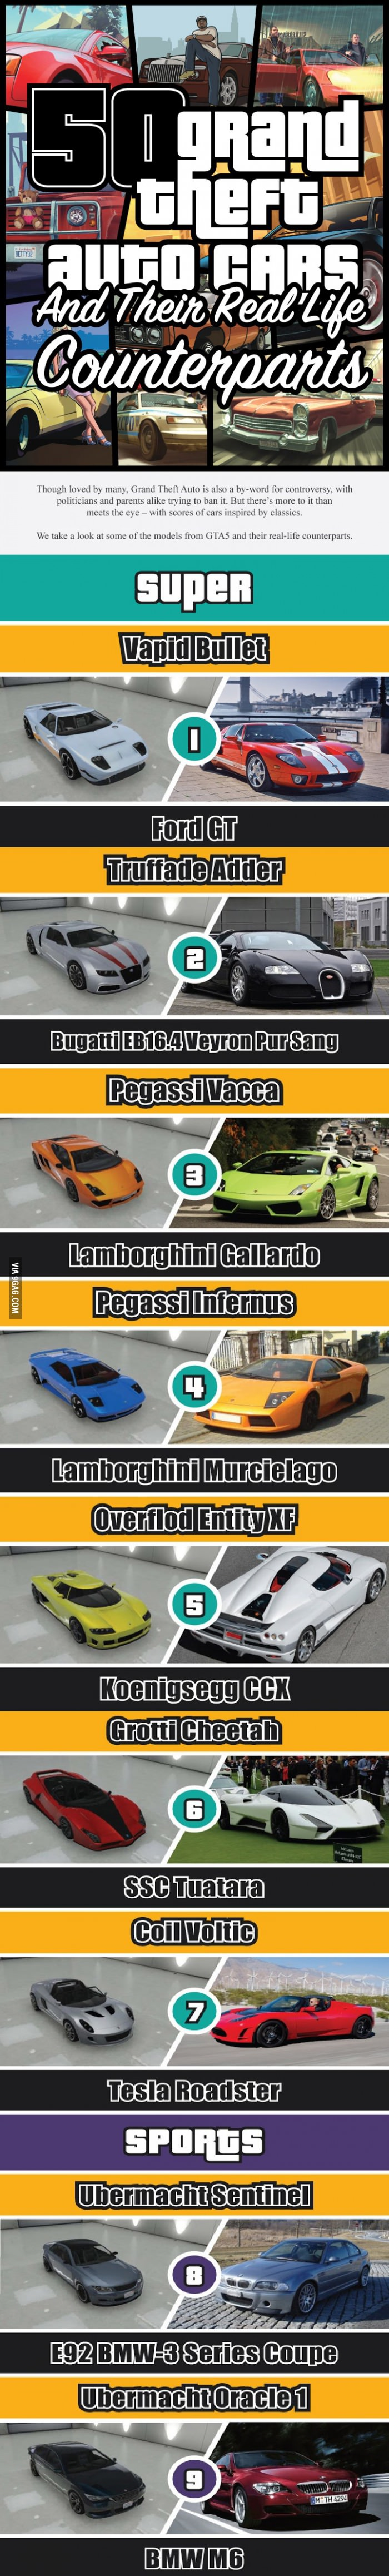 Gta V Cars in real life part 1 | Gaming (Everything